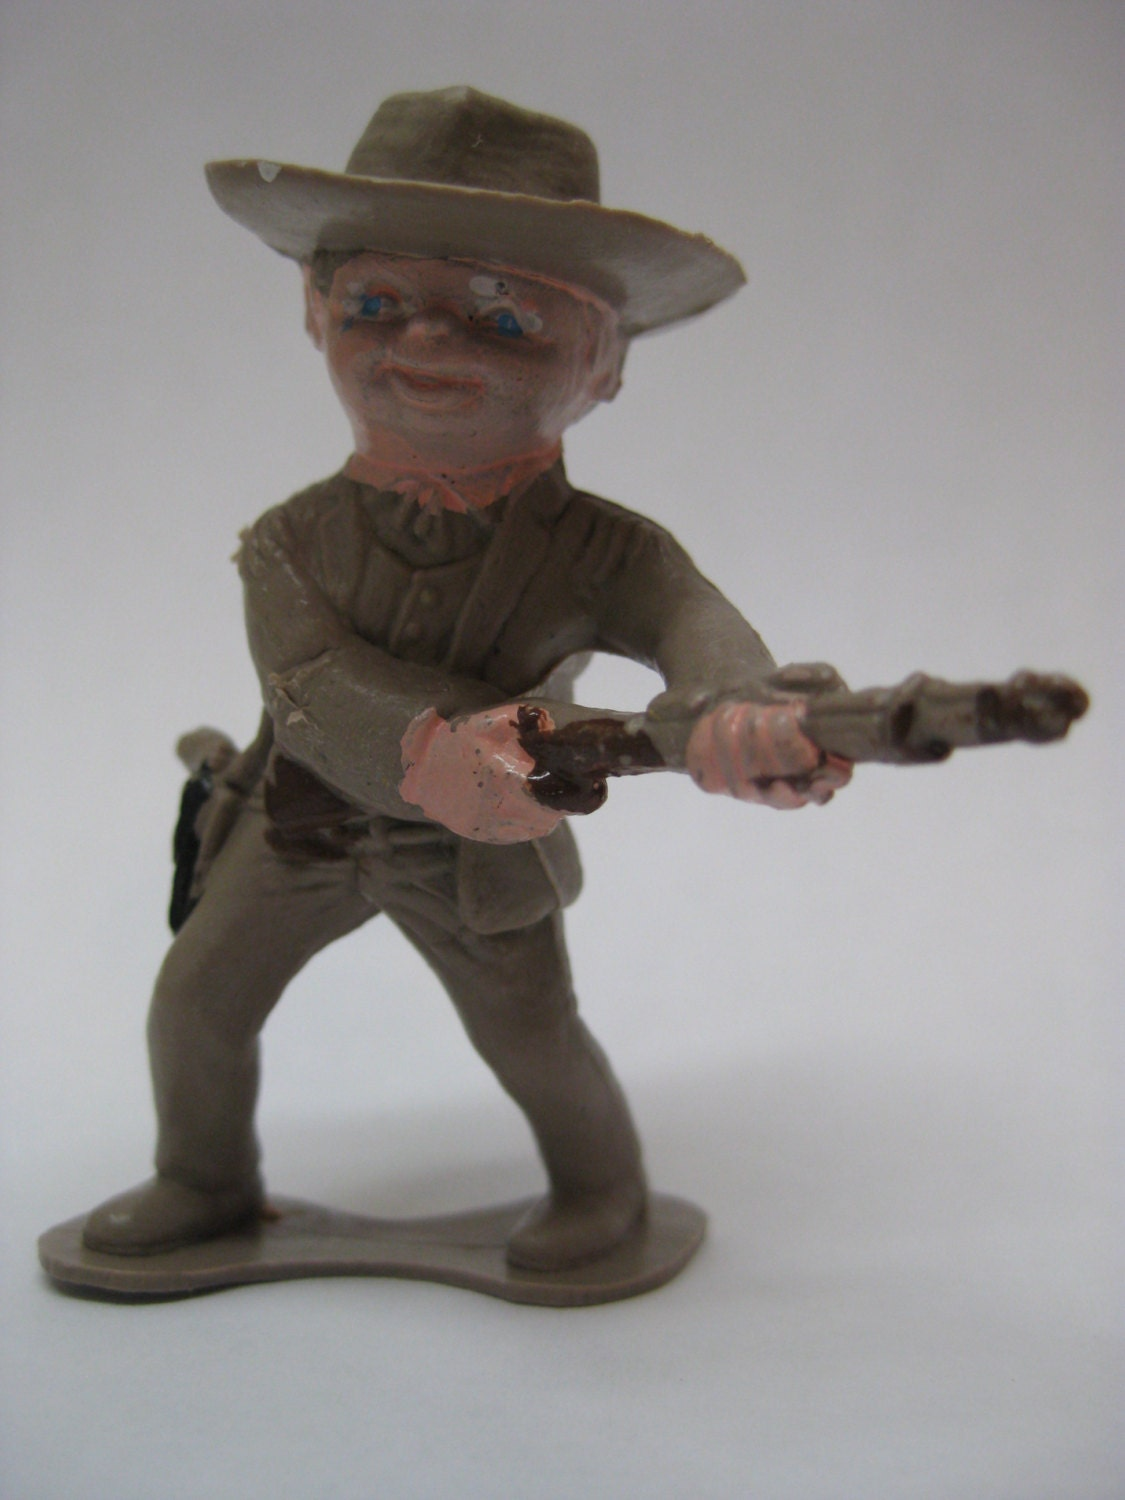 Miniature Toys For Boys : Cowboy toy boy plastic brown vintage miniature